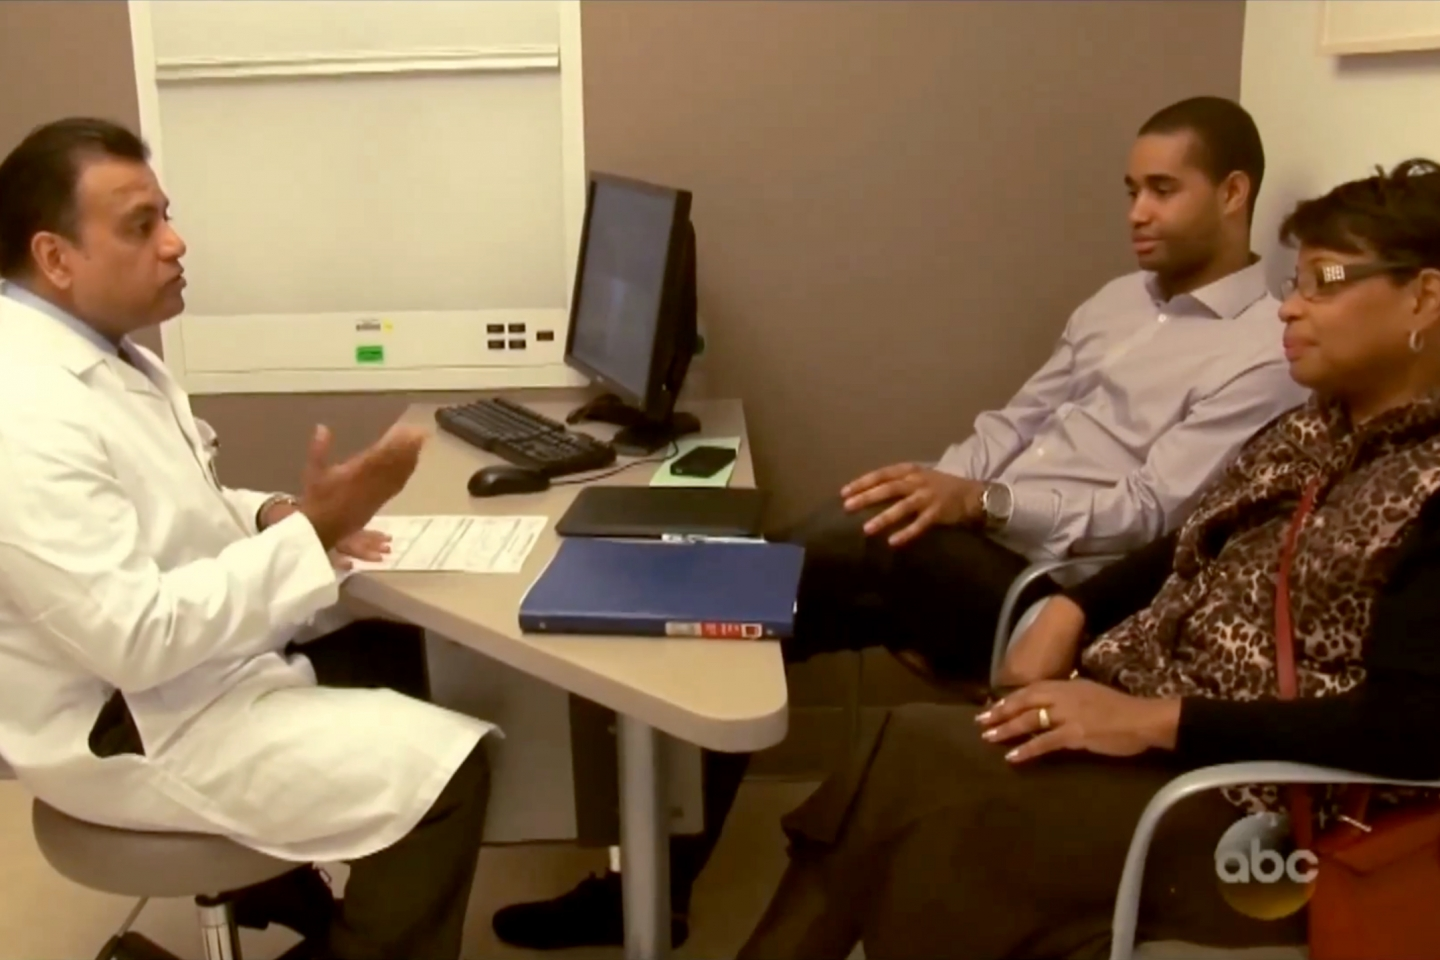 Dr. Kapur discusses kidney donation and transplantation with Rita and her son Anthony in an episode of NY Med